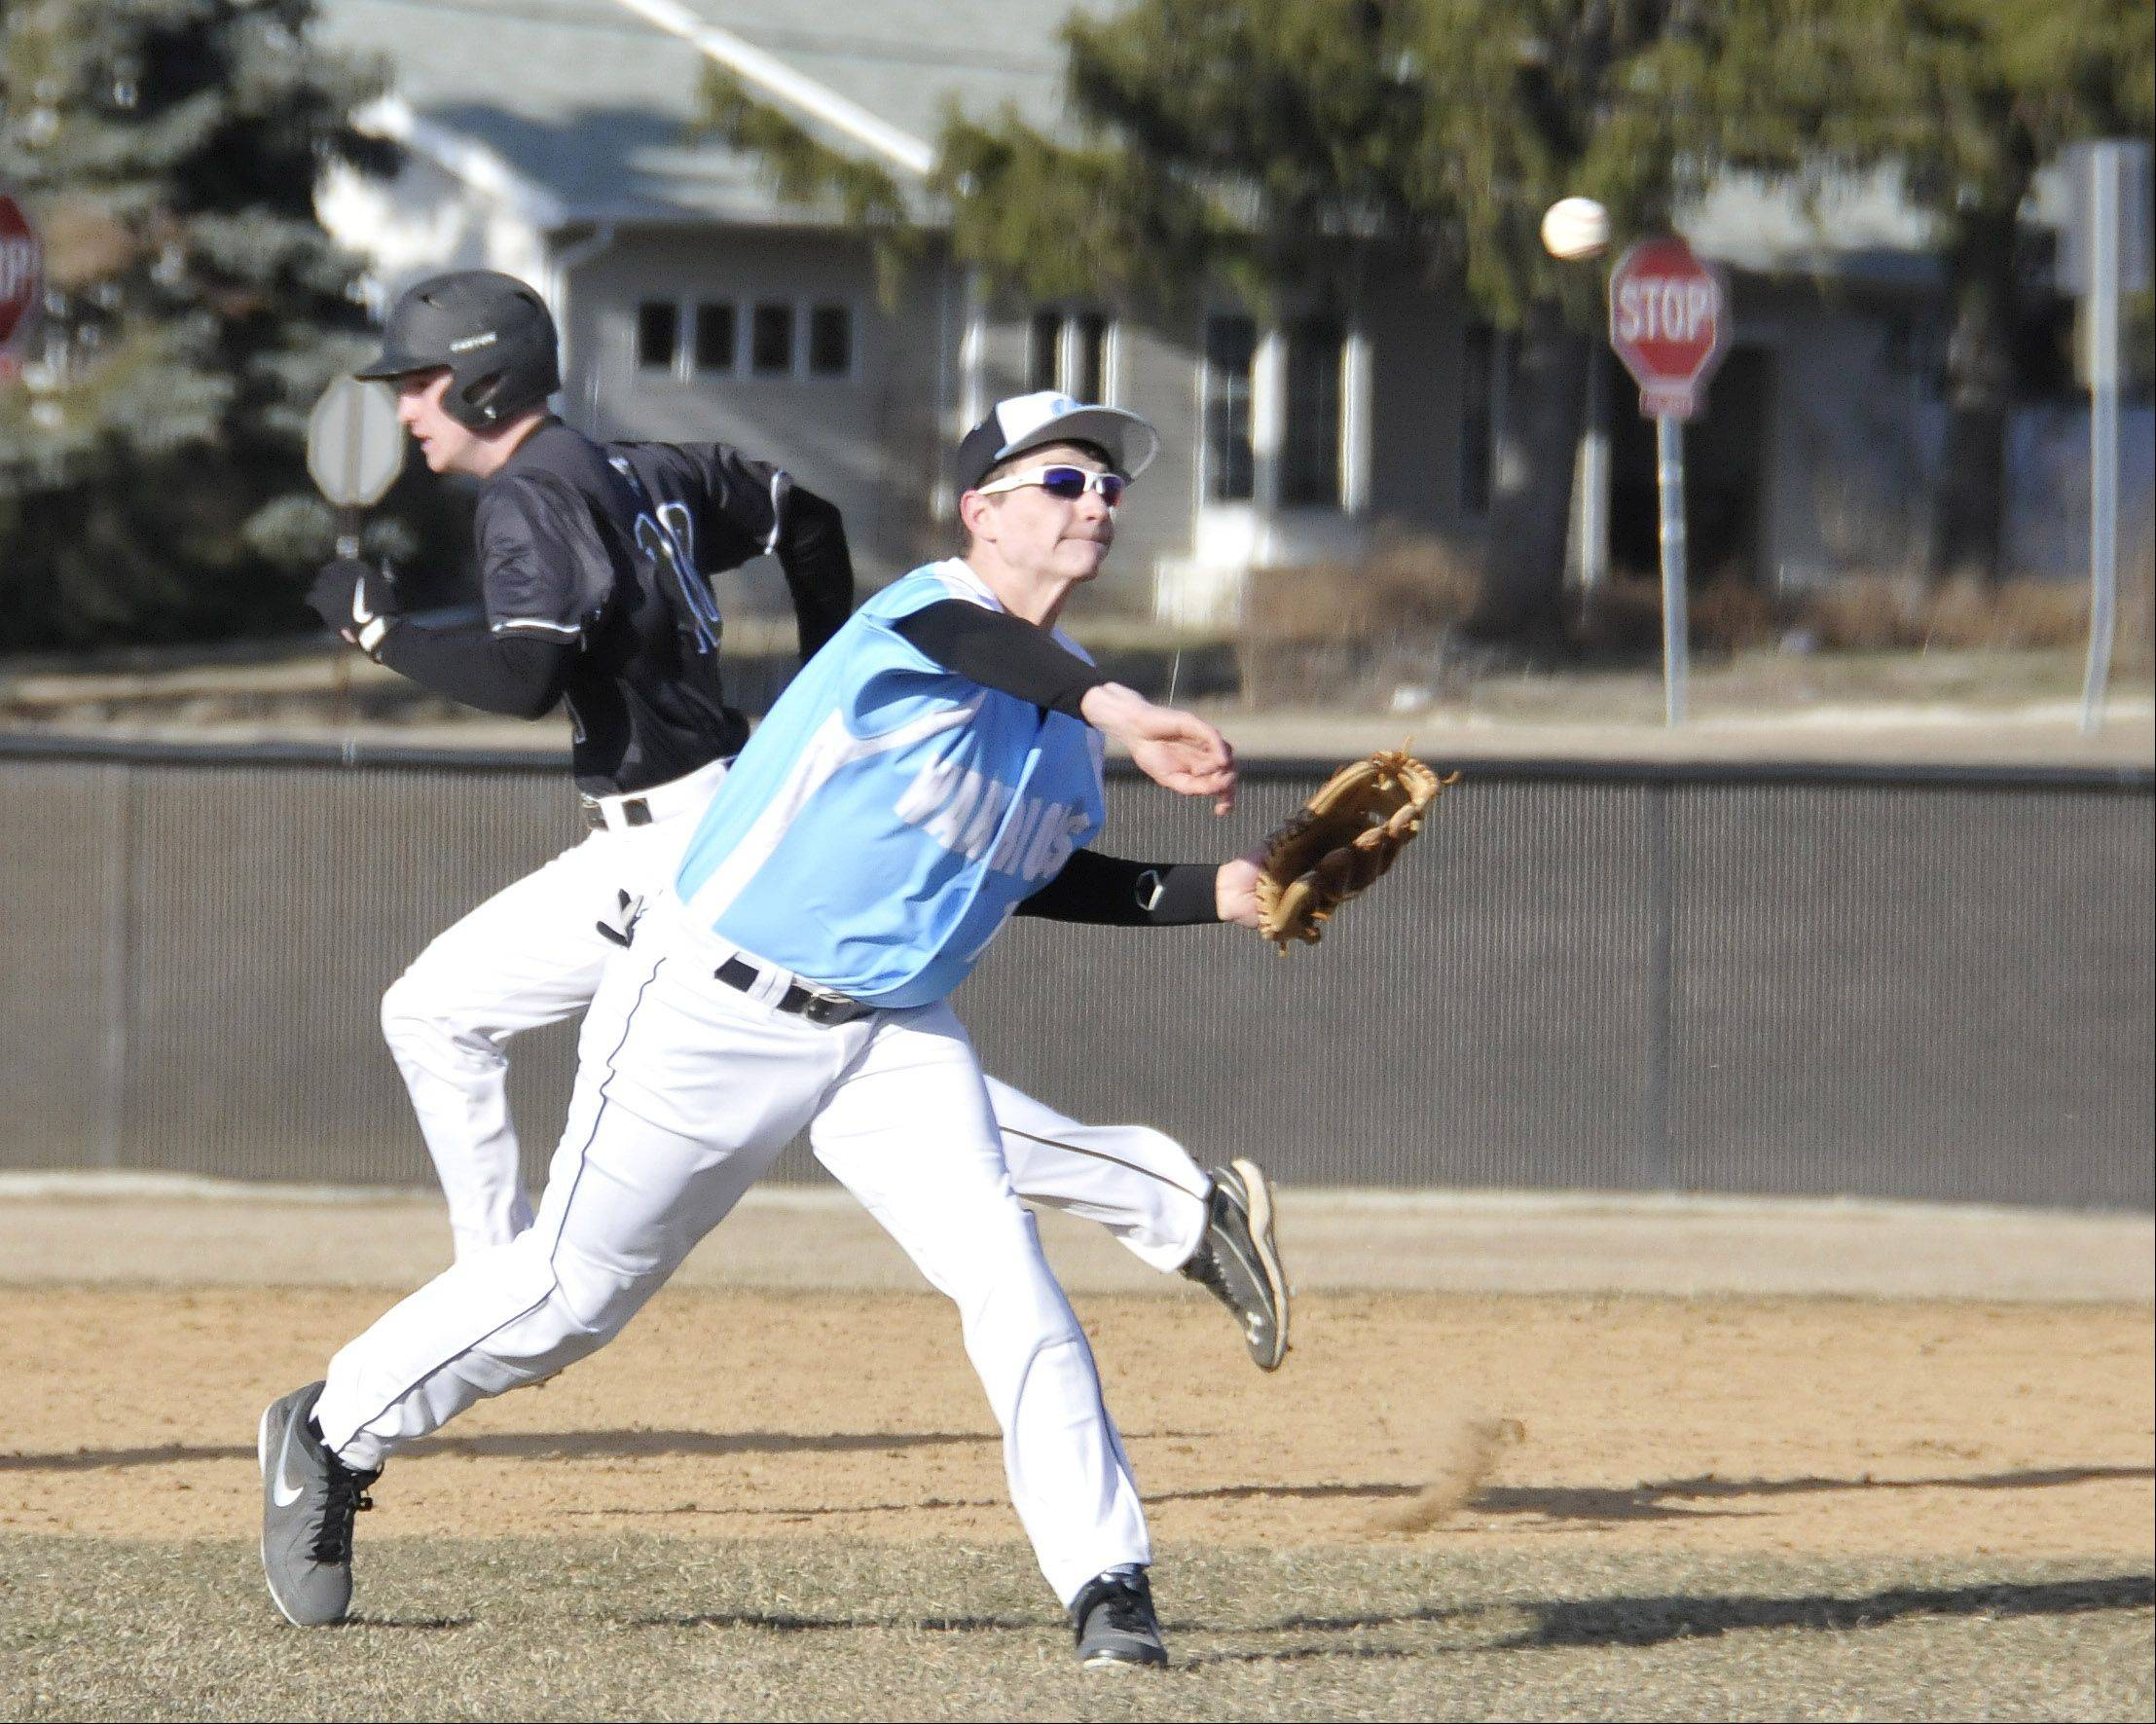 Willowbrook's shortstop AJ Nolen fires home in the 4th inning. Unfortunately for him and the Warriers, the throw went wide, allowing Hinsdale's fourth run to score. Hinsdale South played baseball Monday afternoon at Willowbrook High School in Villa Park.